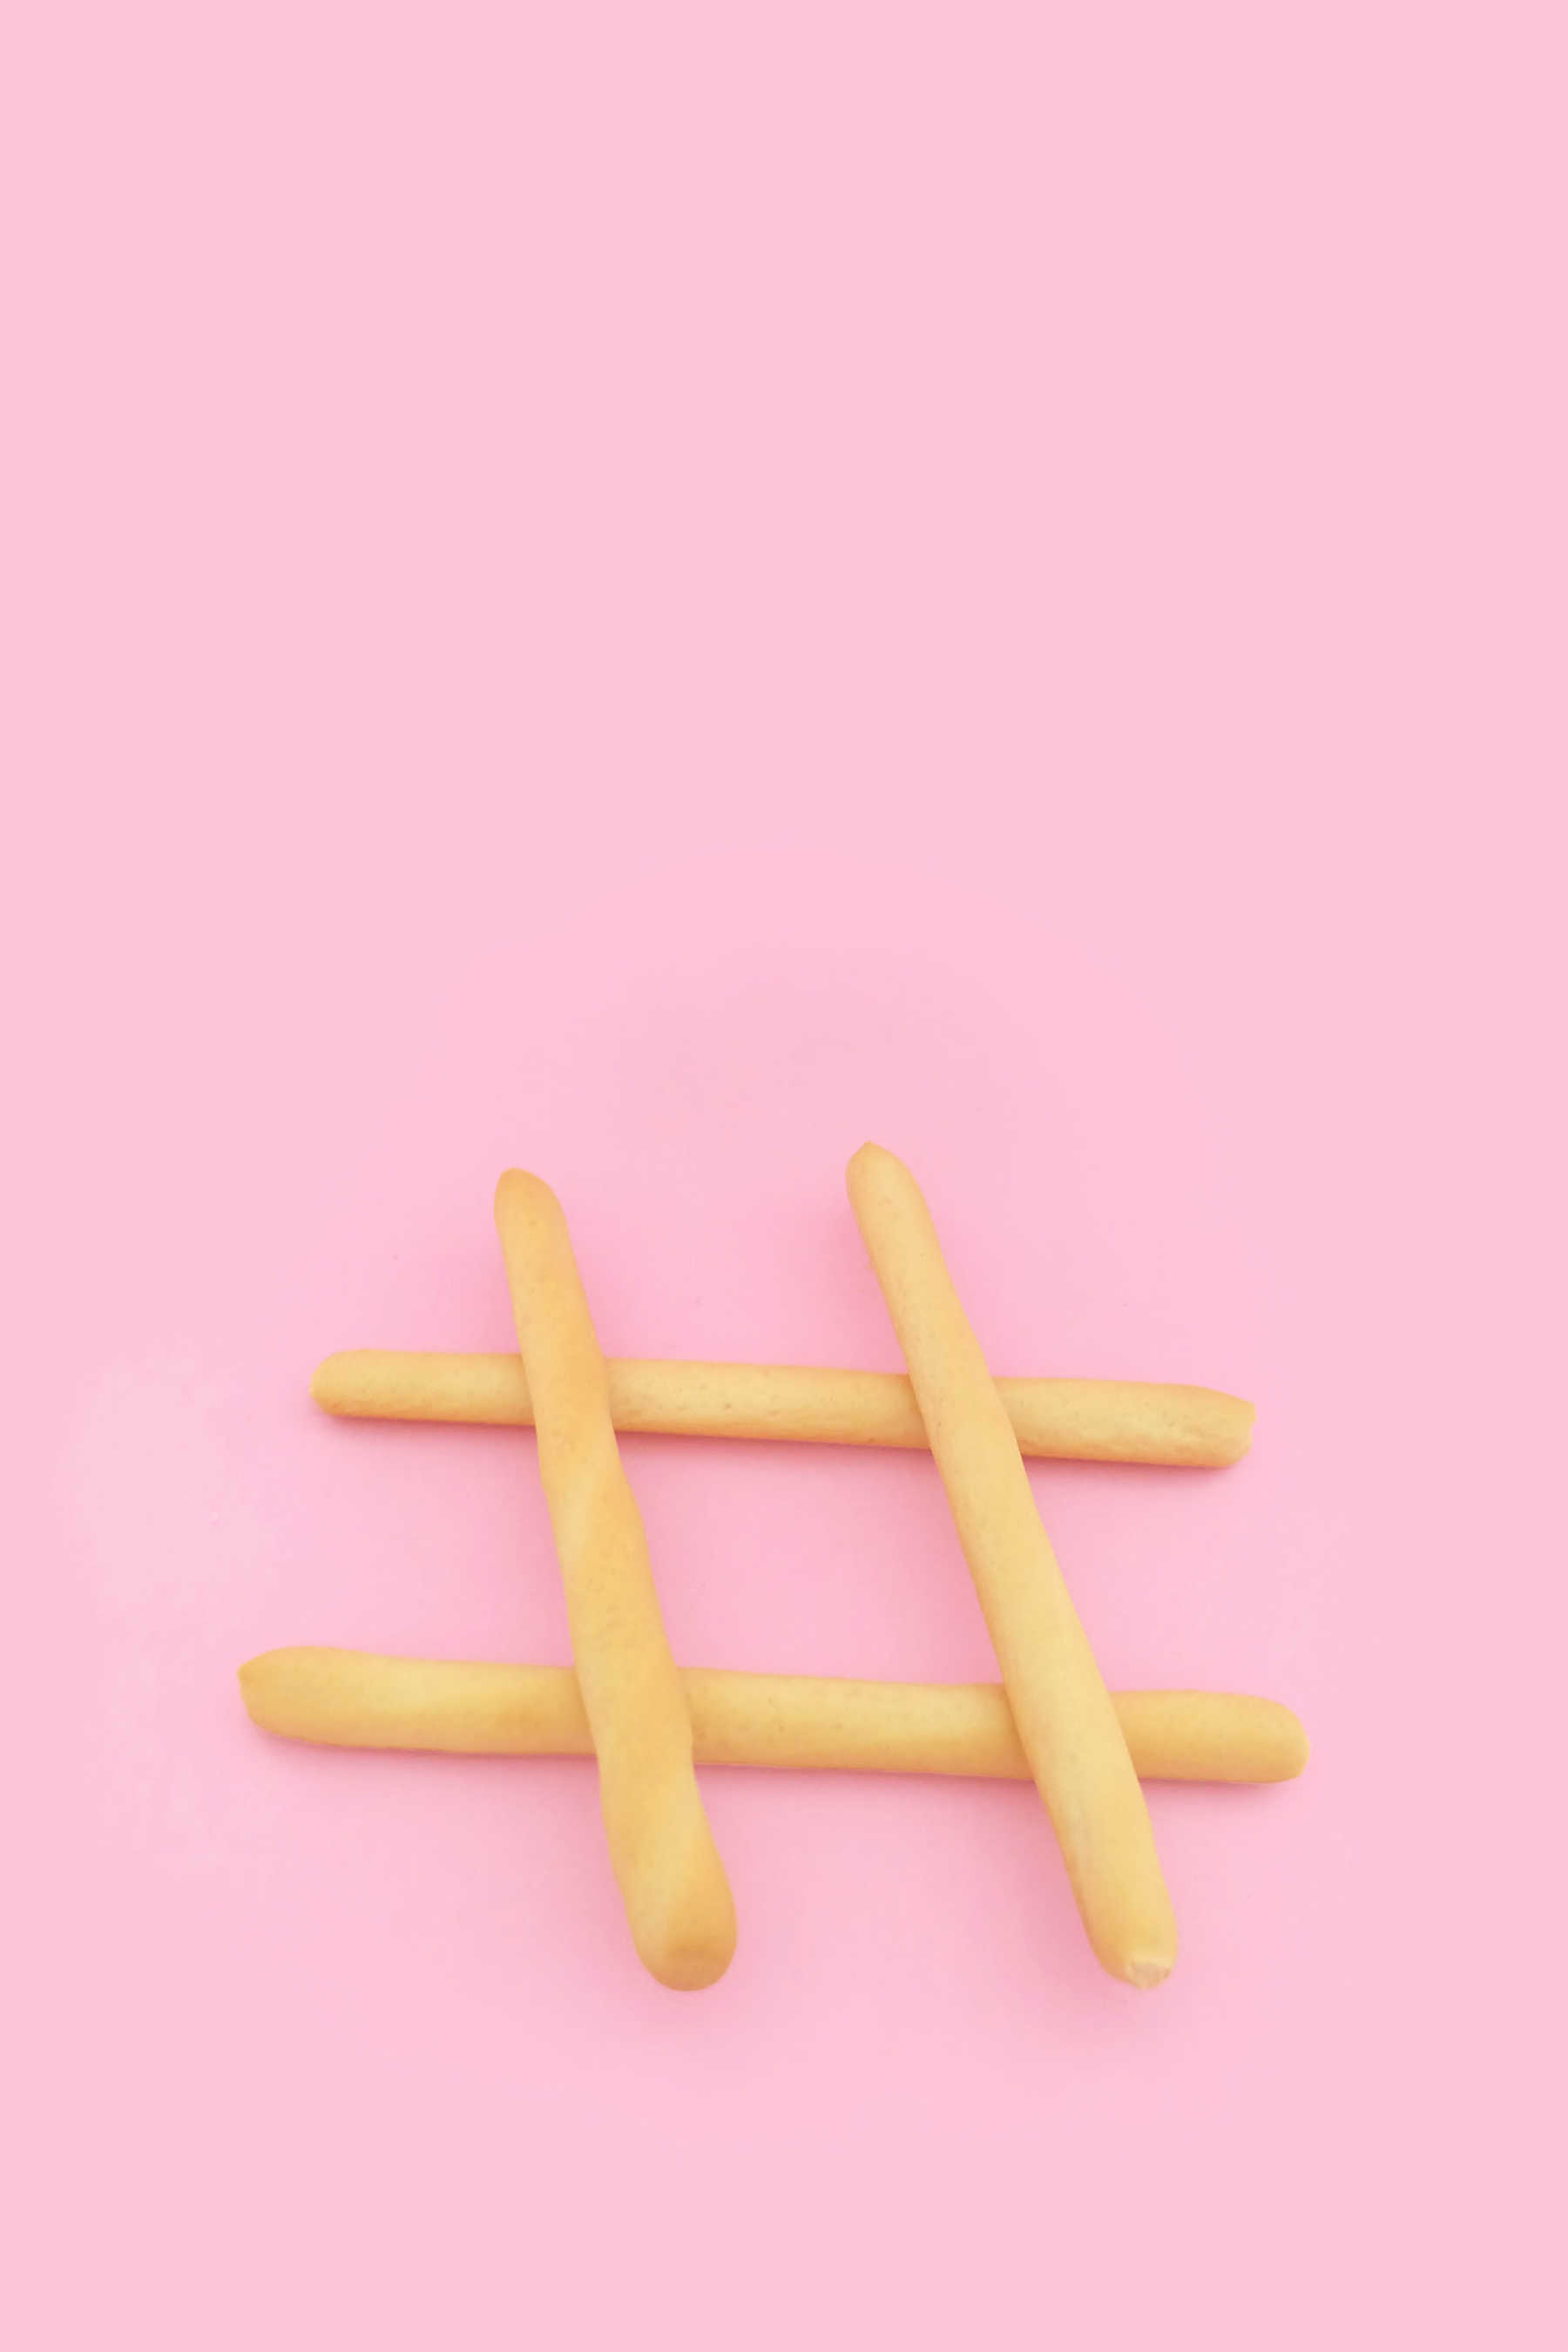 Digital marketing hashtag symbol on pink background